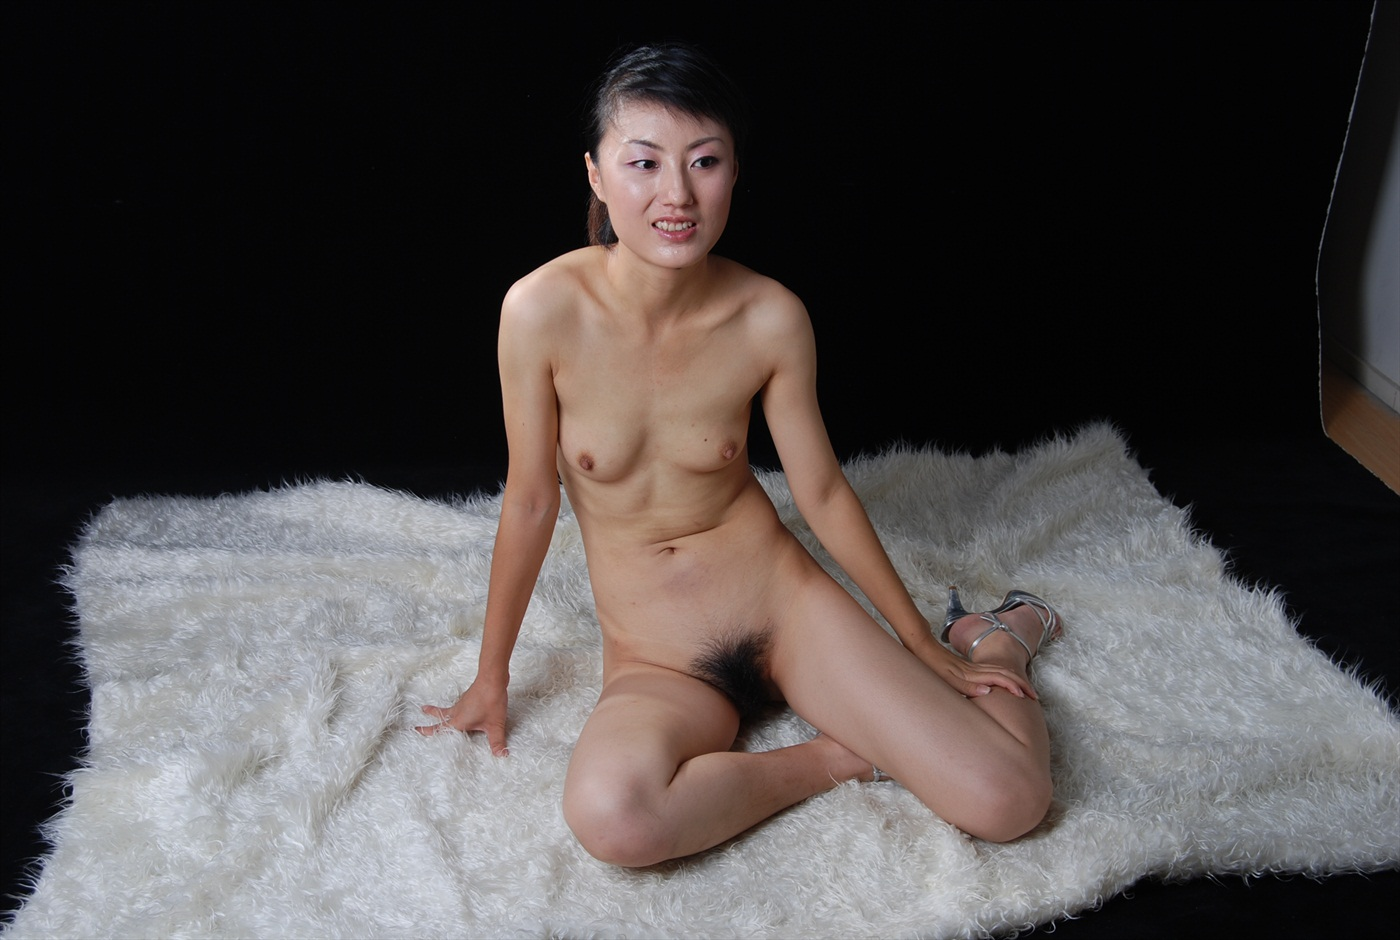 Nude model first yong free